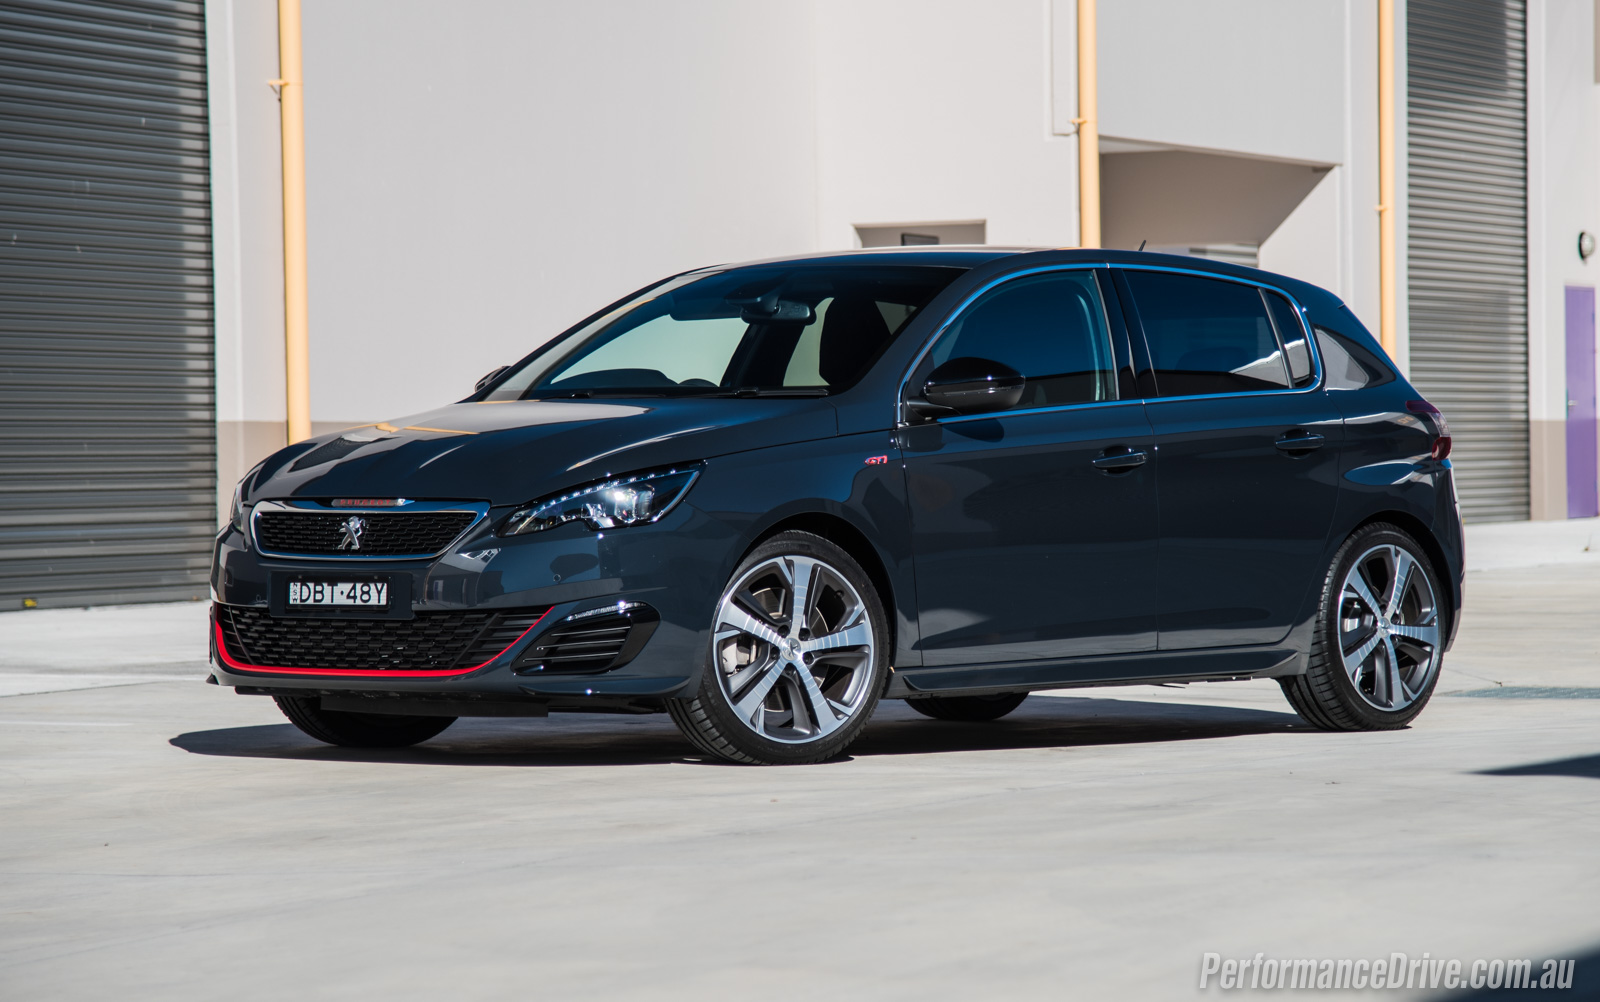 2016 Peugeot 308 GTi 250 review (video) | PerformanceDrive